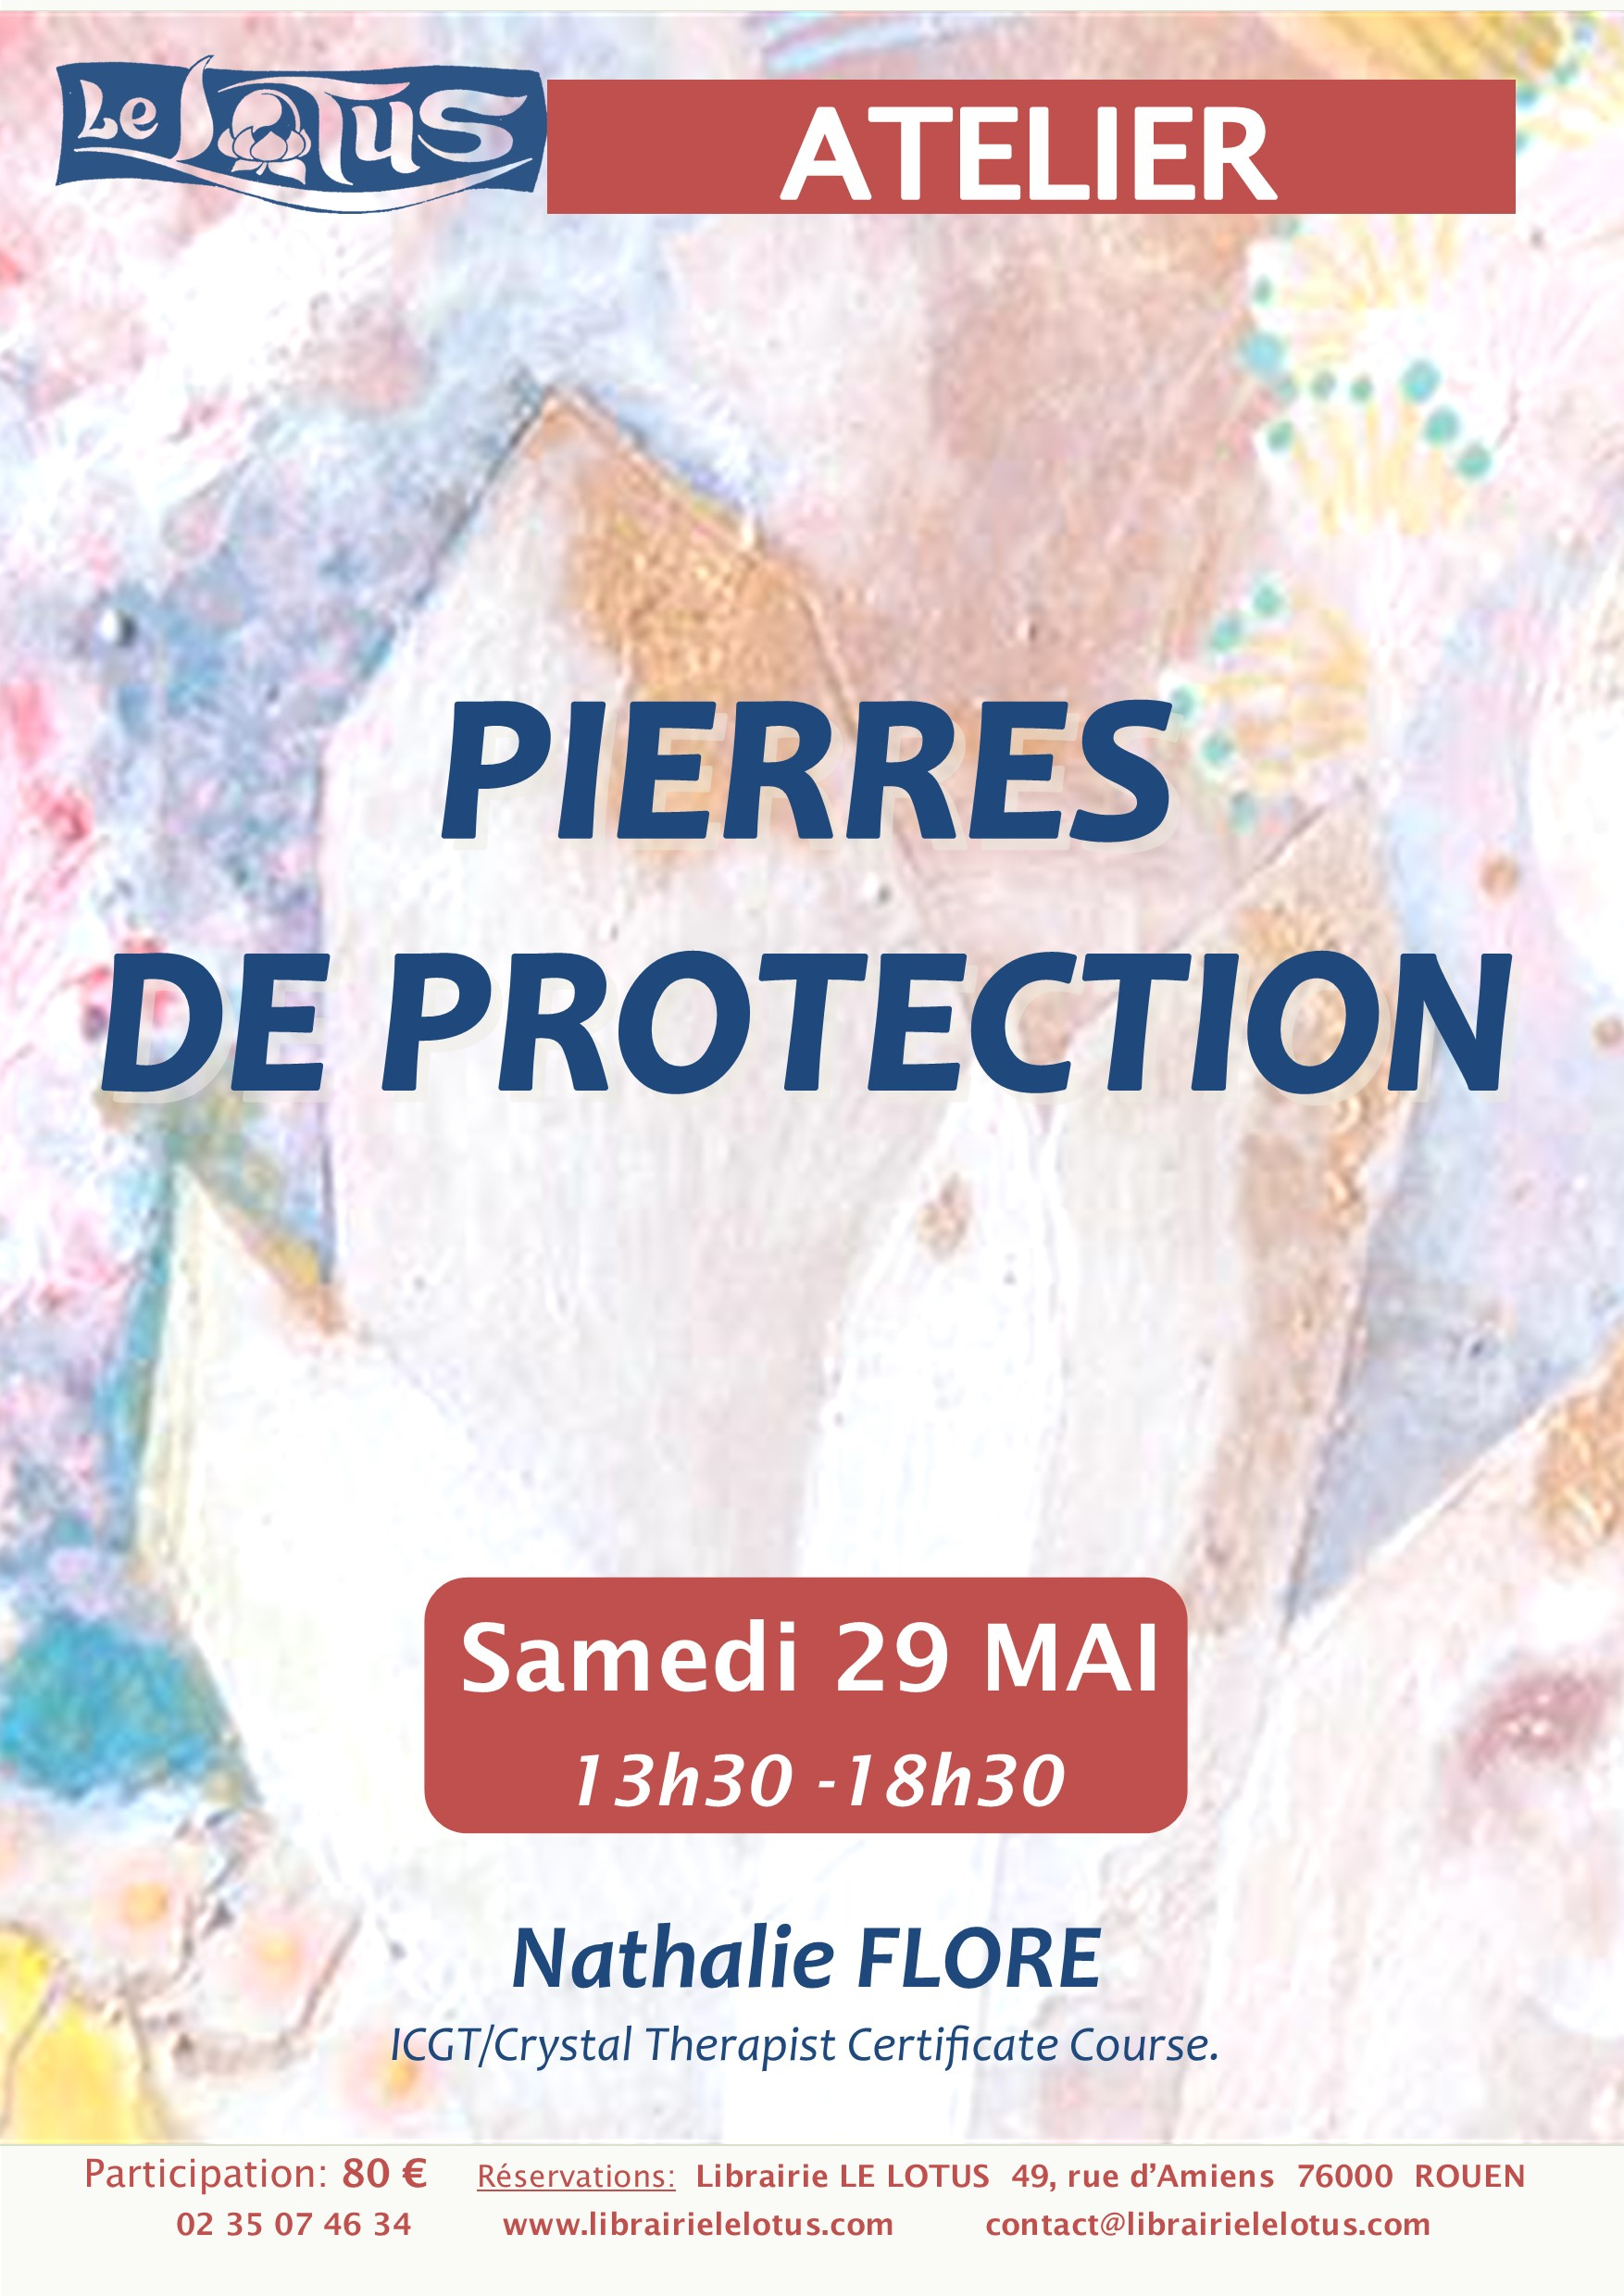 ATELIER - PIERRES DE PROTECTION